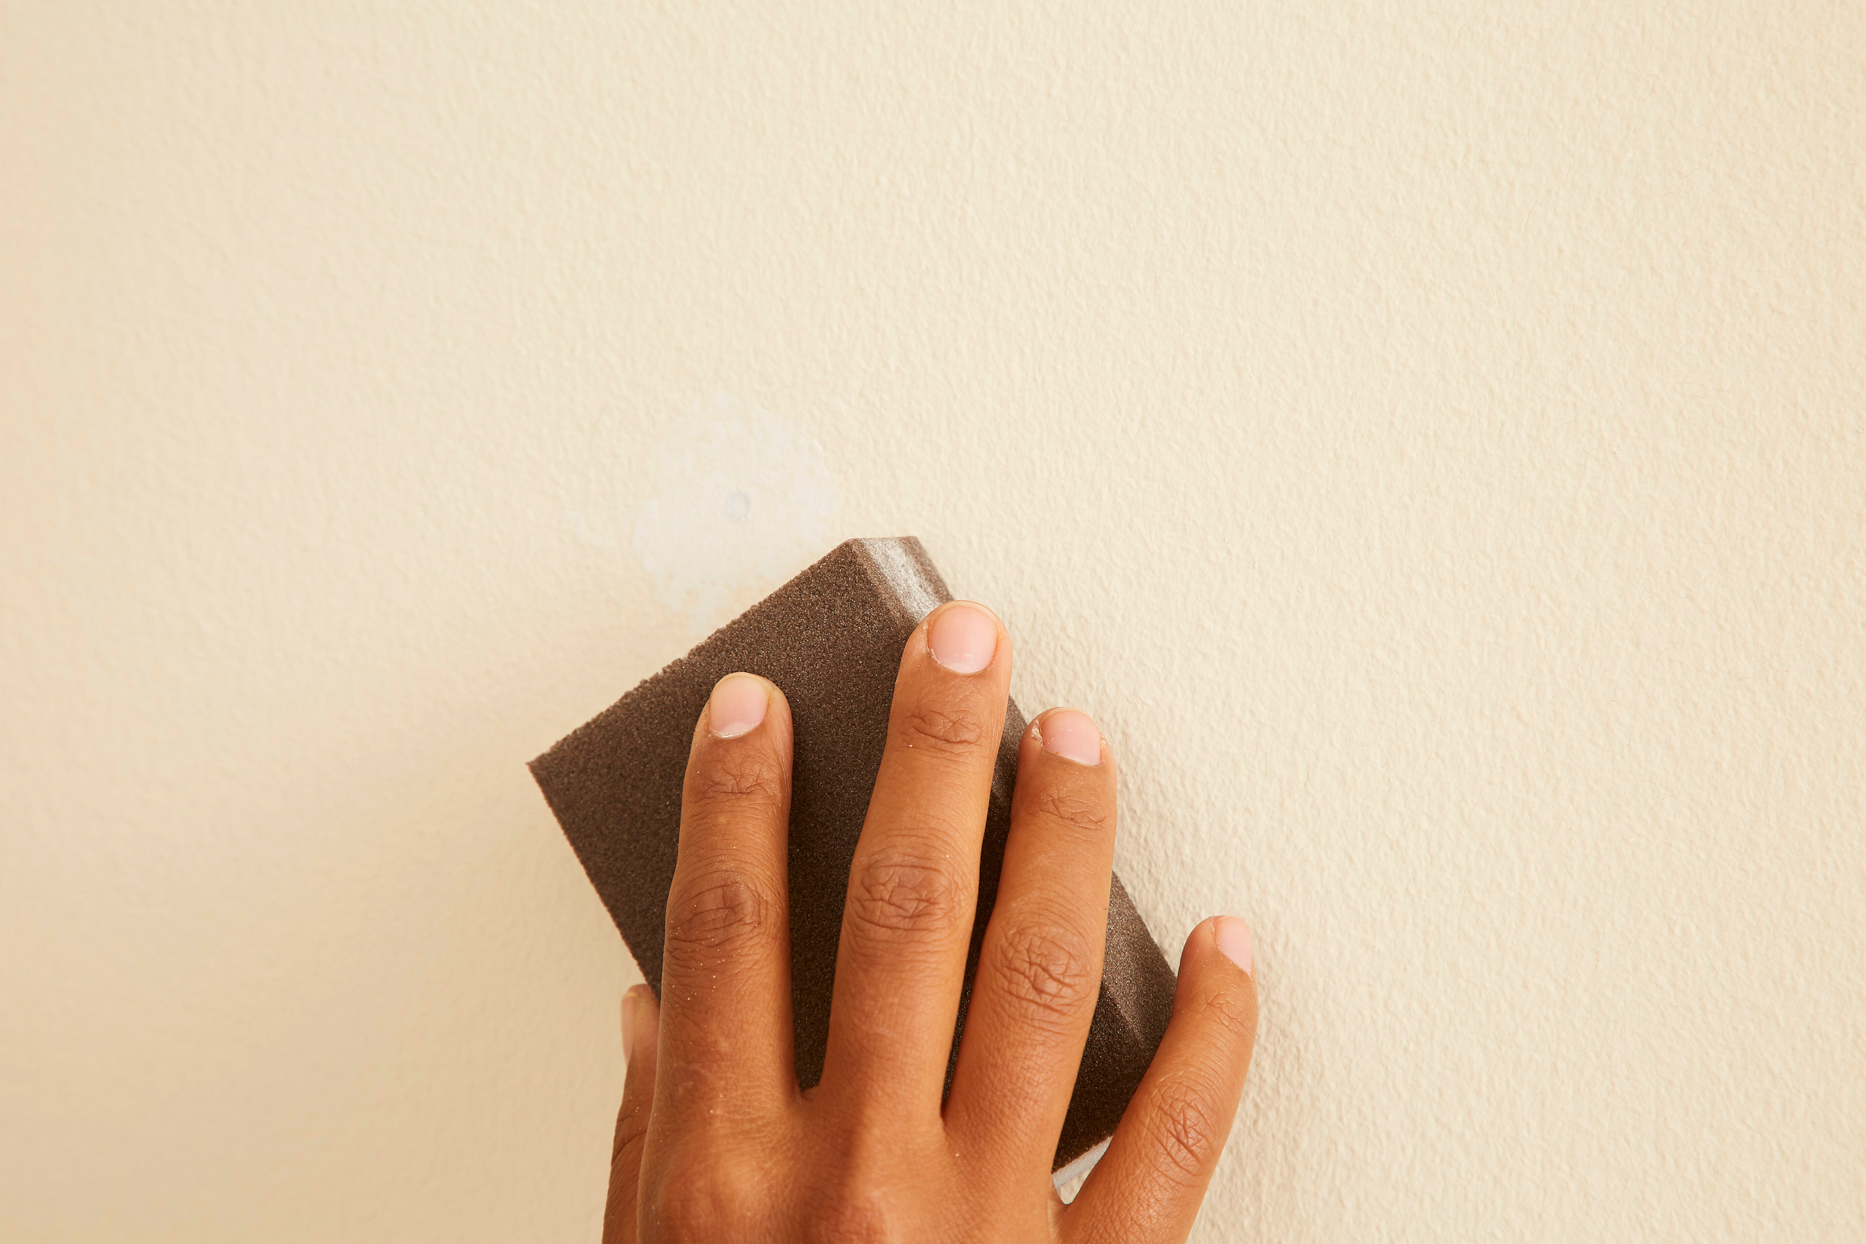 sanding putty on wall